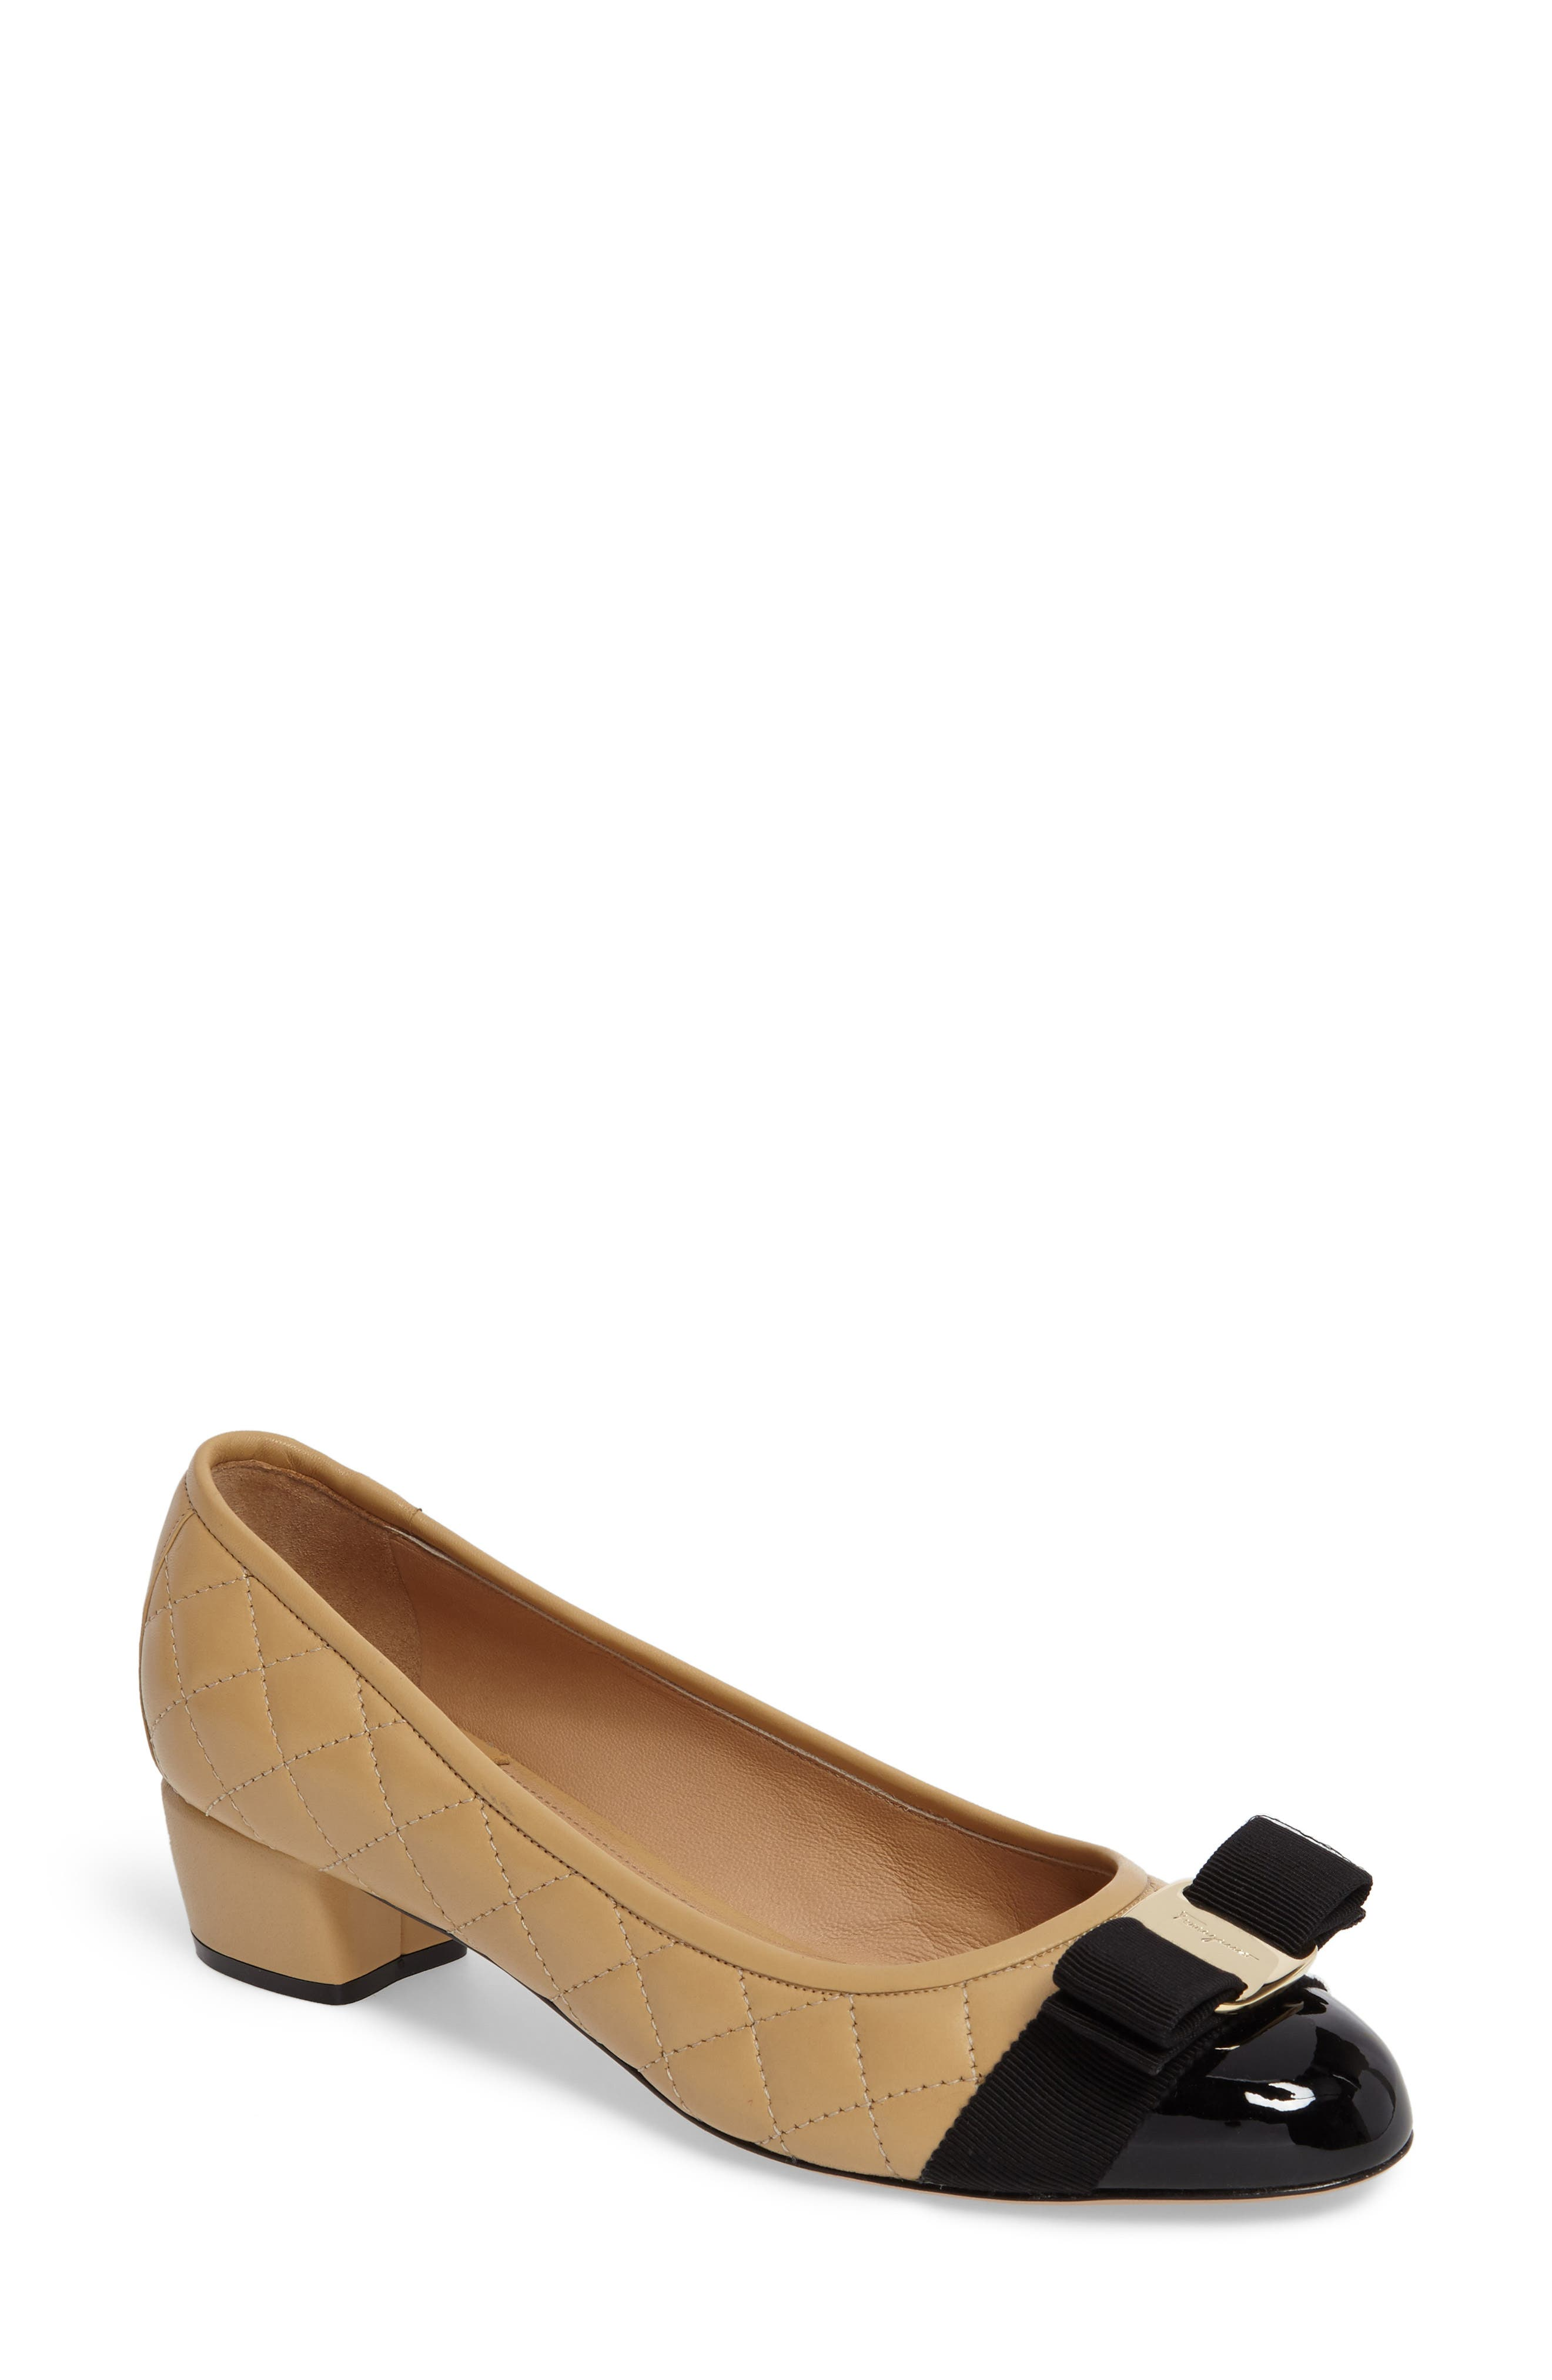 Salvatore Ferragamo Vara Pump (Women)